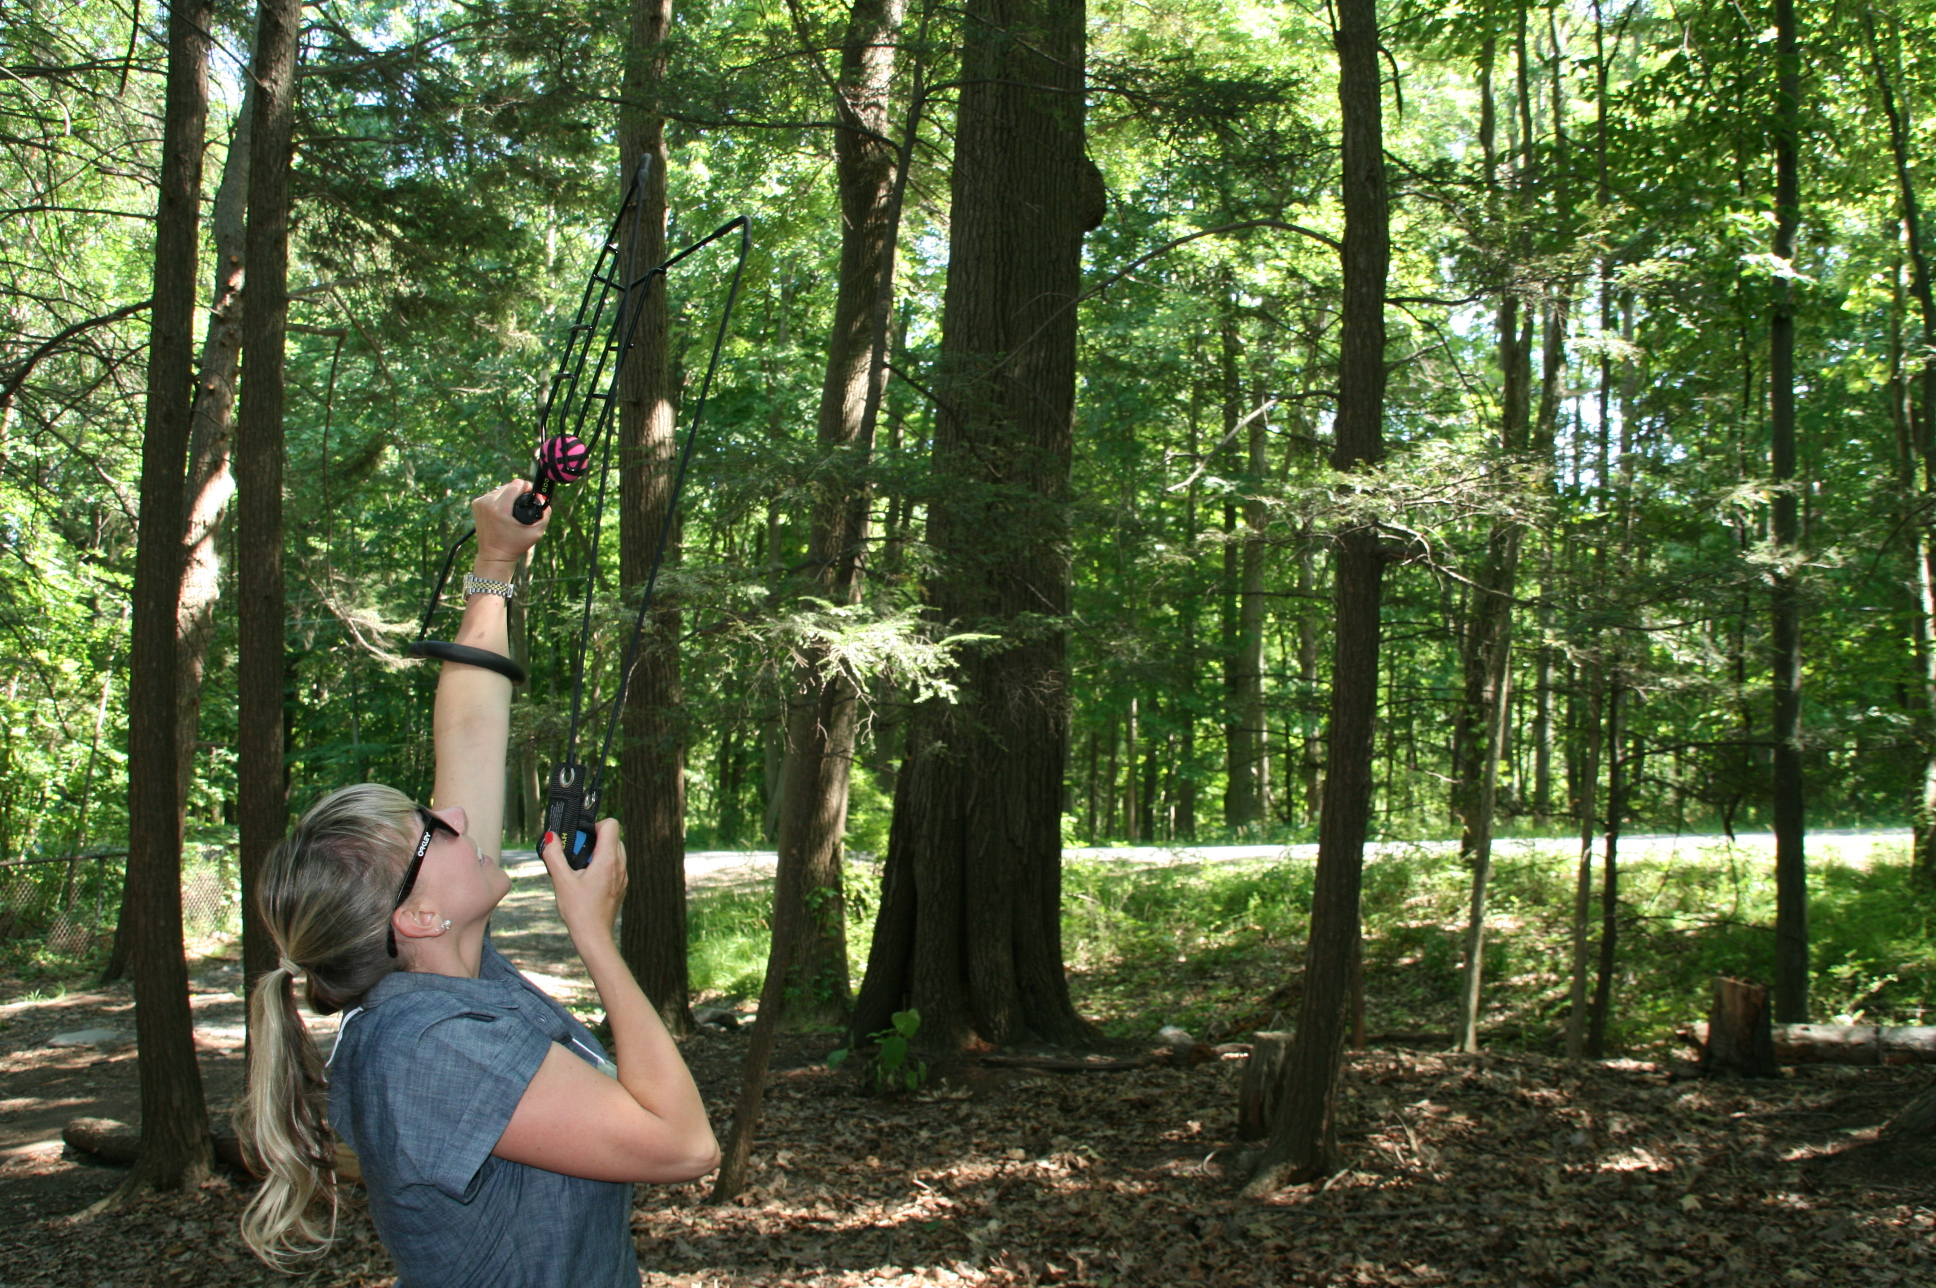 Erin practicing a sling shot survey technique for detecting hemlock woolly adelgid, an invasive plant pest in the Finger Lakes region of New York State.